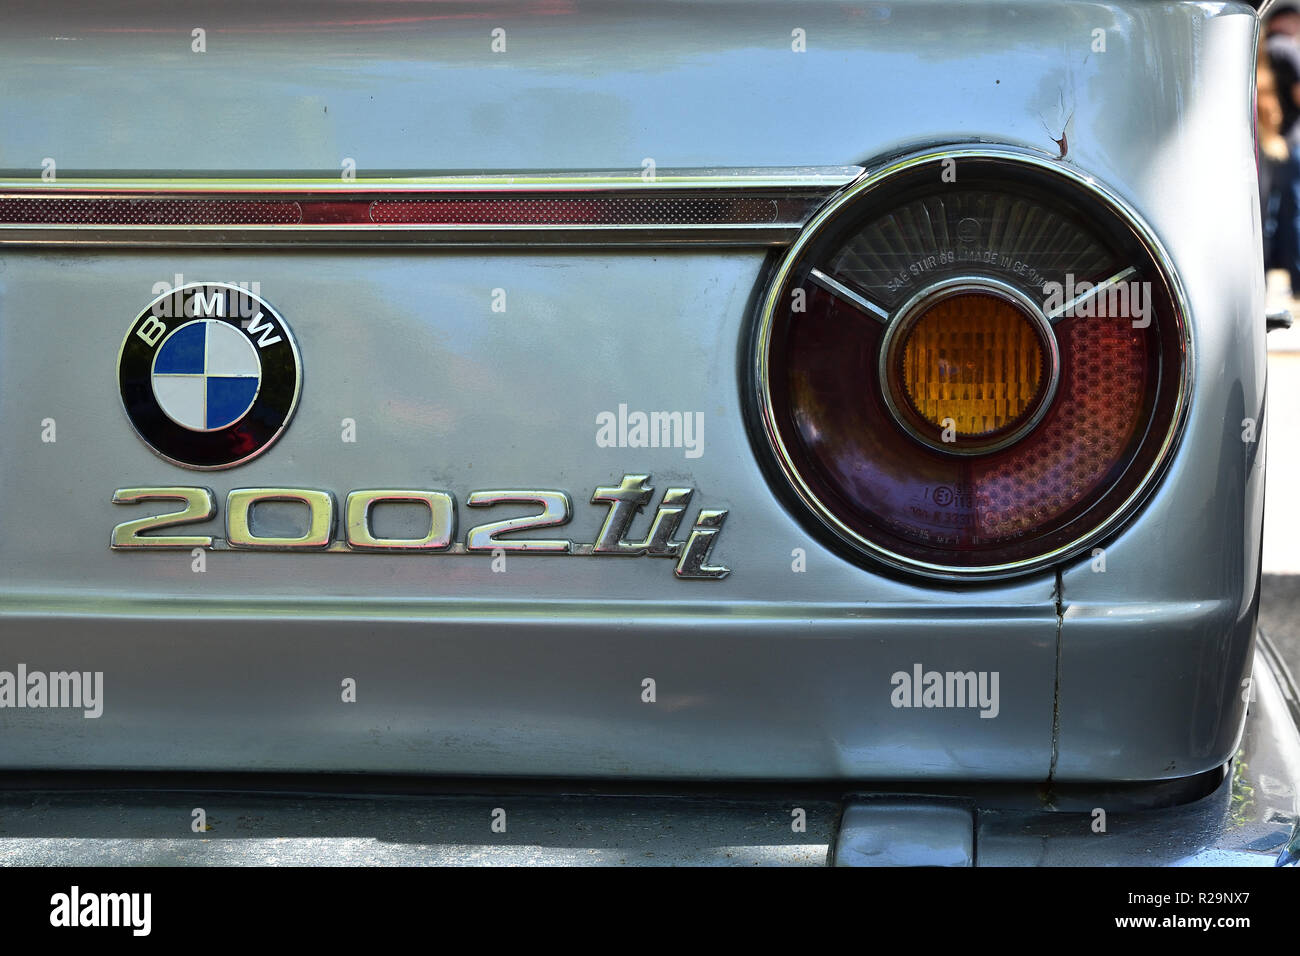 BMW 2002tii badge and nameplate - Stock Image